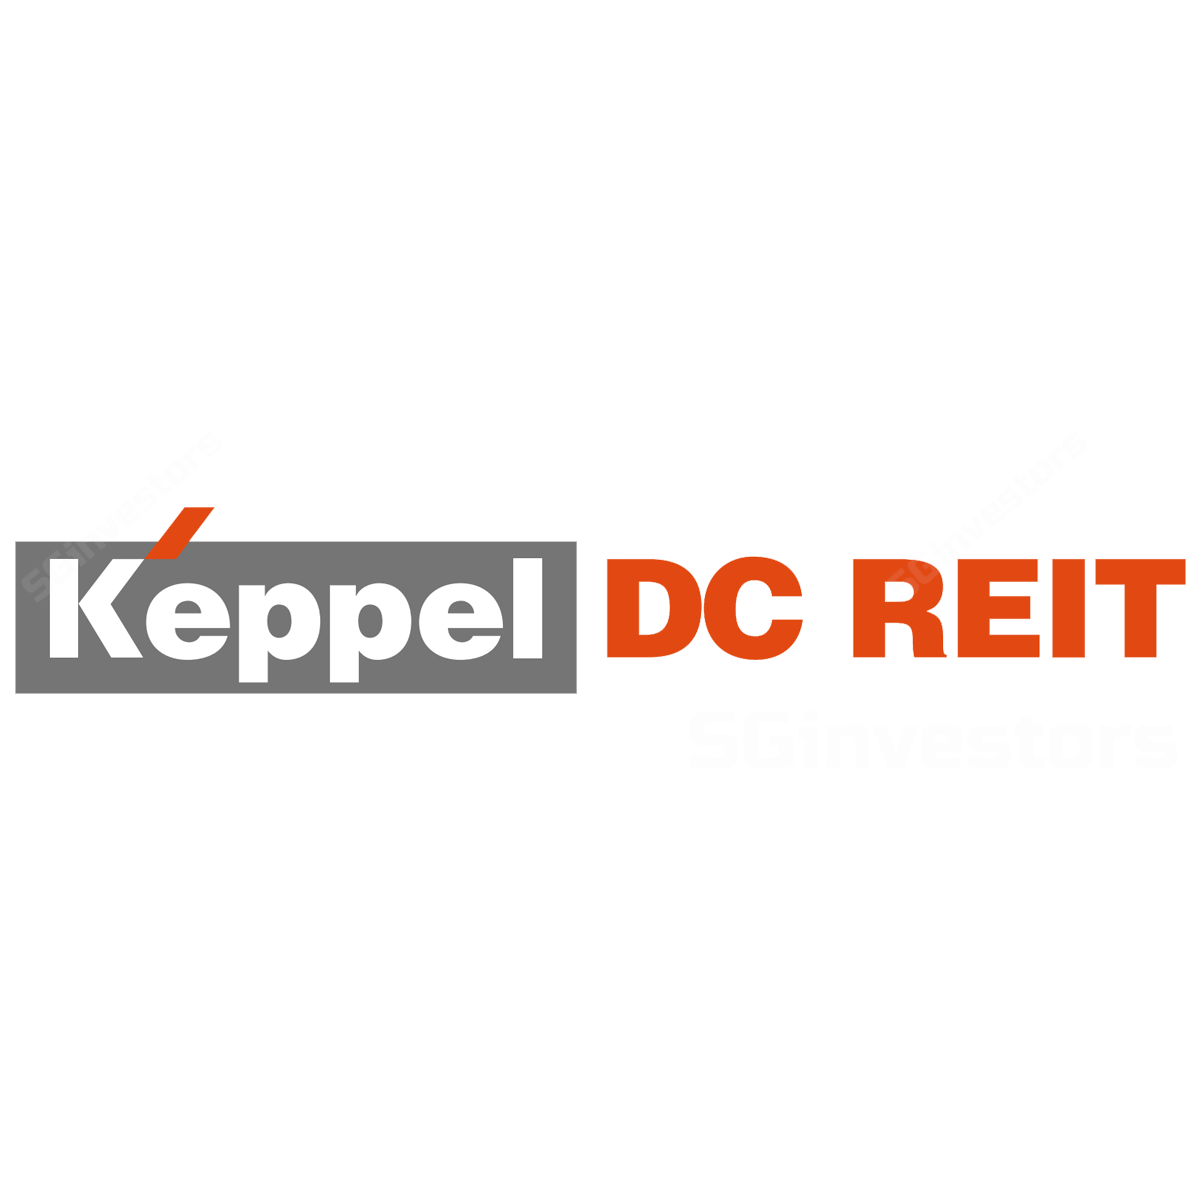 Keppel DC REIT - CGS-CIMB Research 2018-07-17: Acquisition Growth Booster